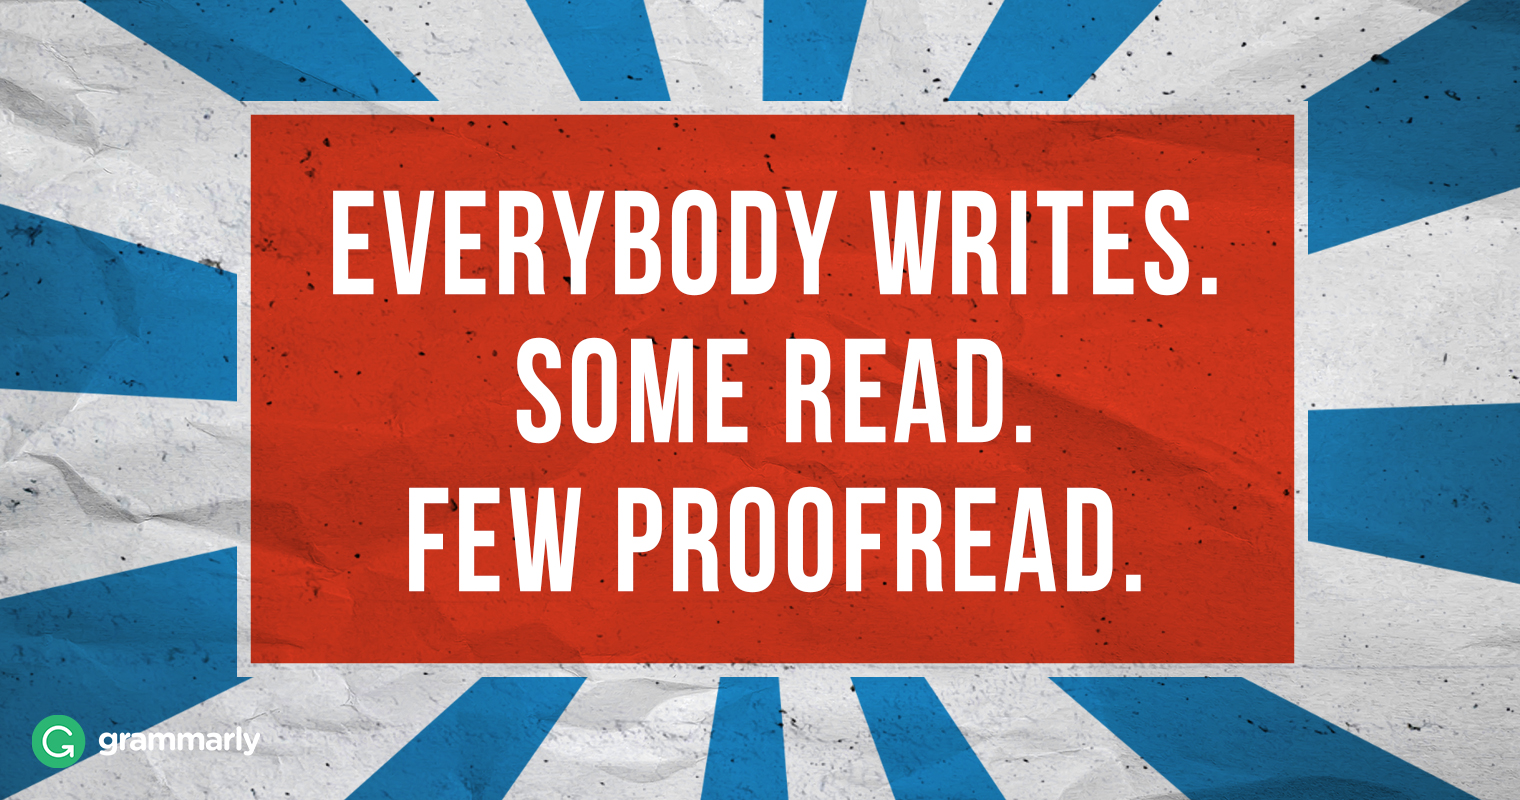 5 Basic Proofreading Habits for a More Productive 2017